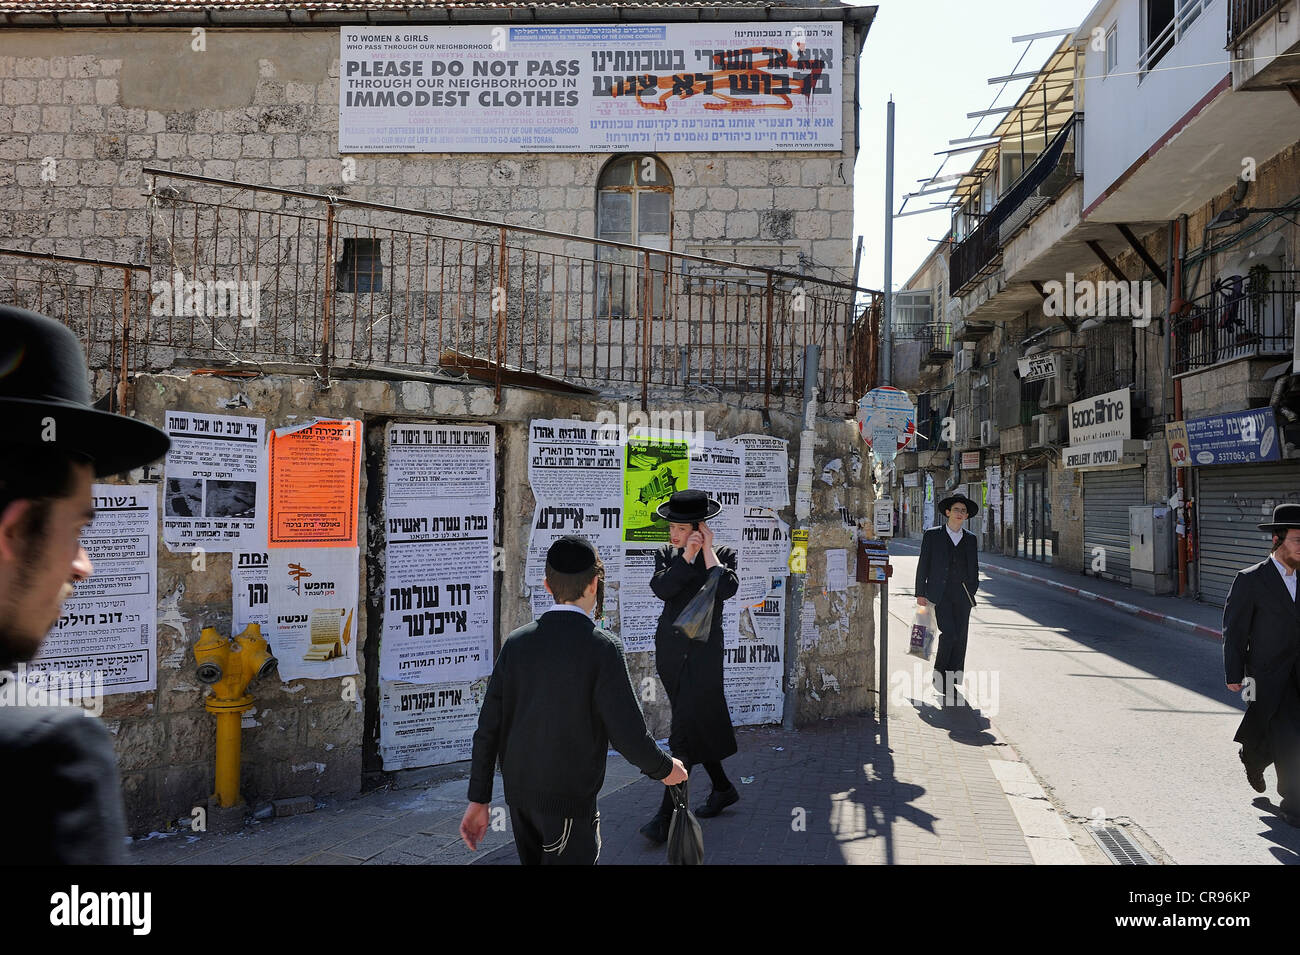 Banner up on a house with rules of conduct for tourists, wall newspapers and Orthodox Jews at the front in the district - Stock Image